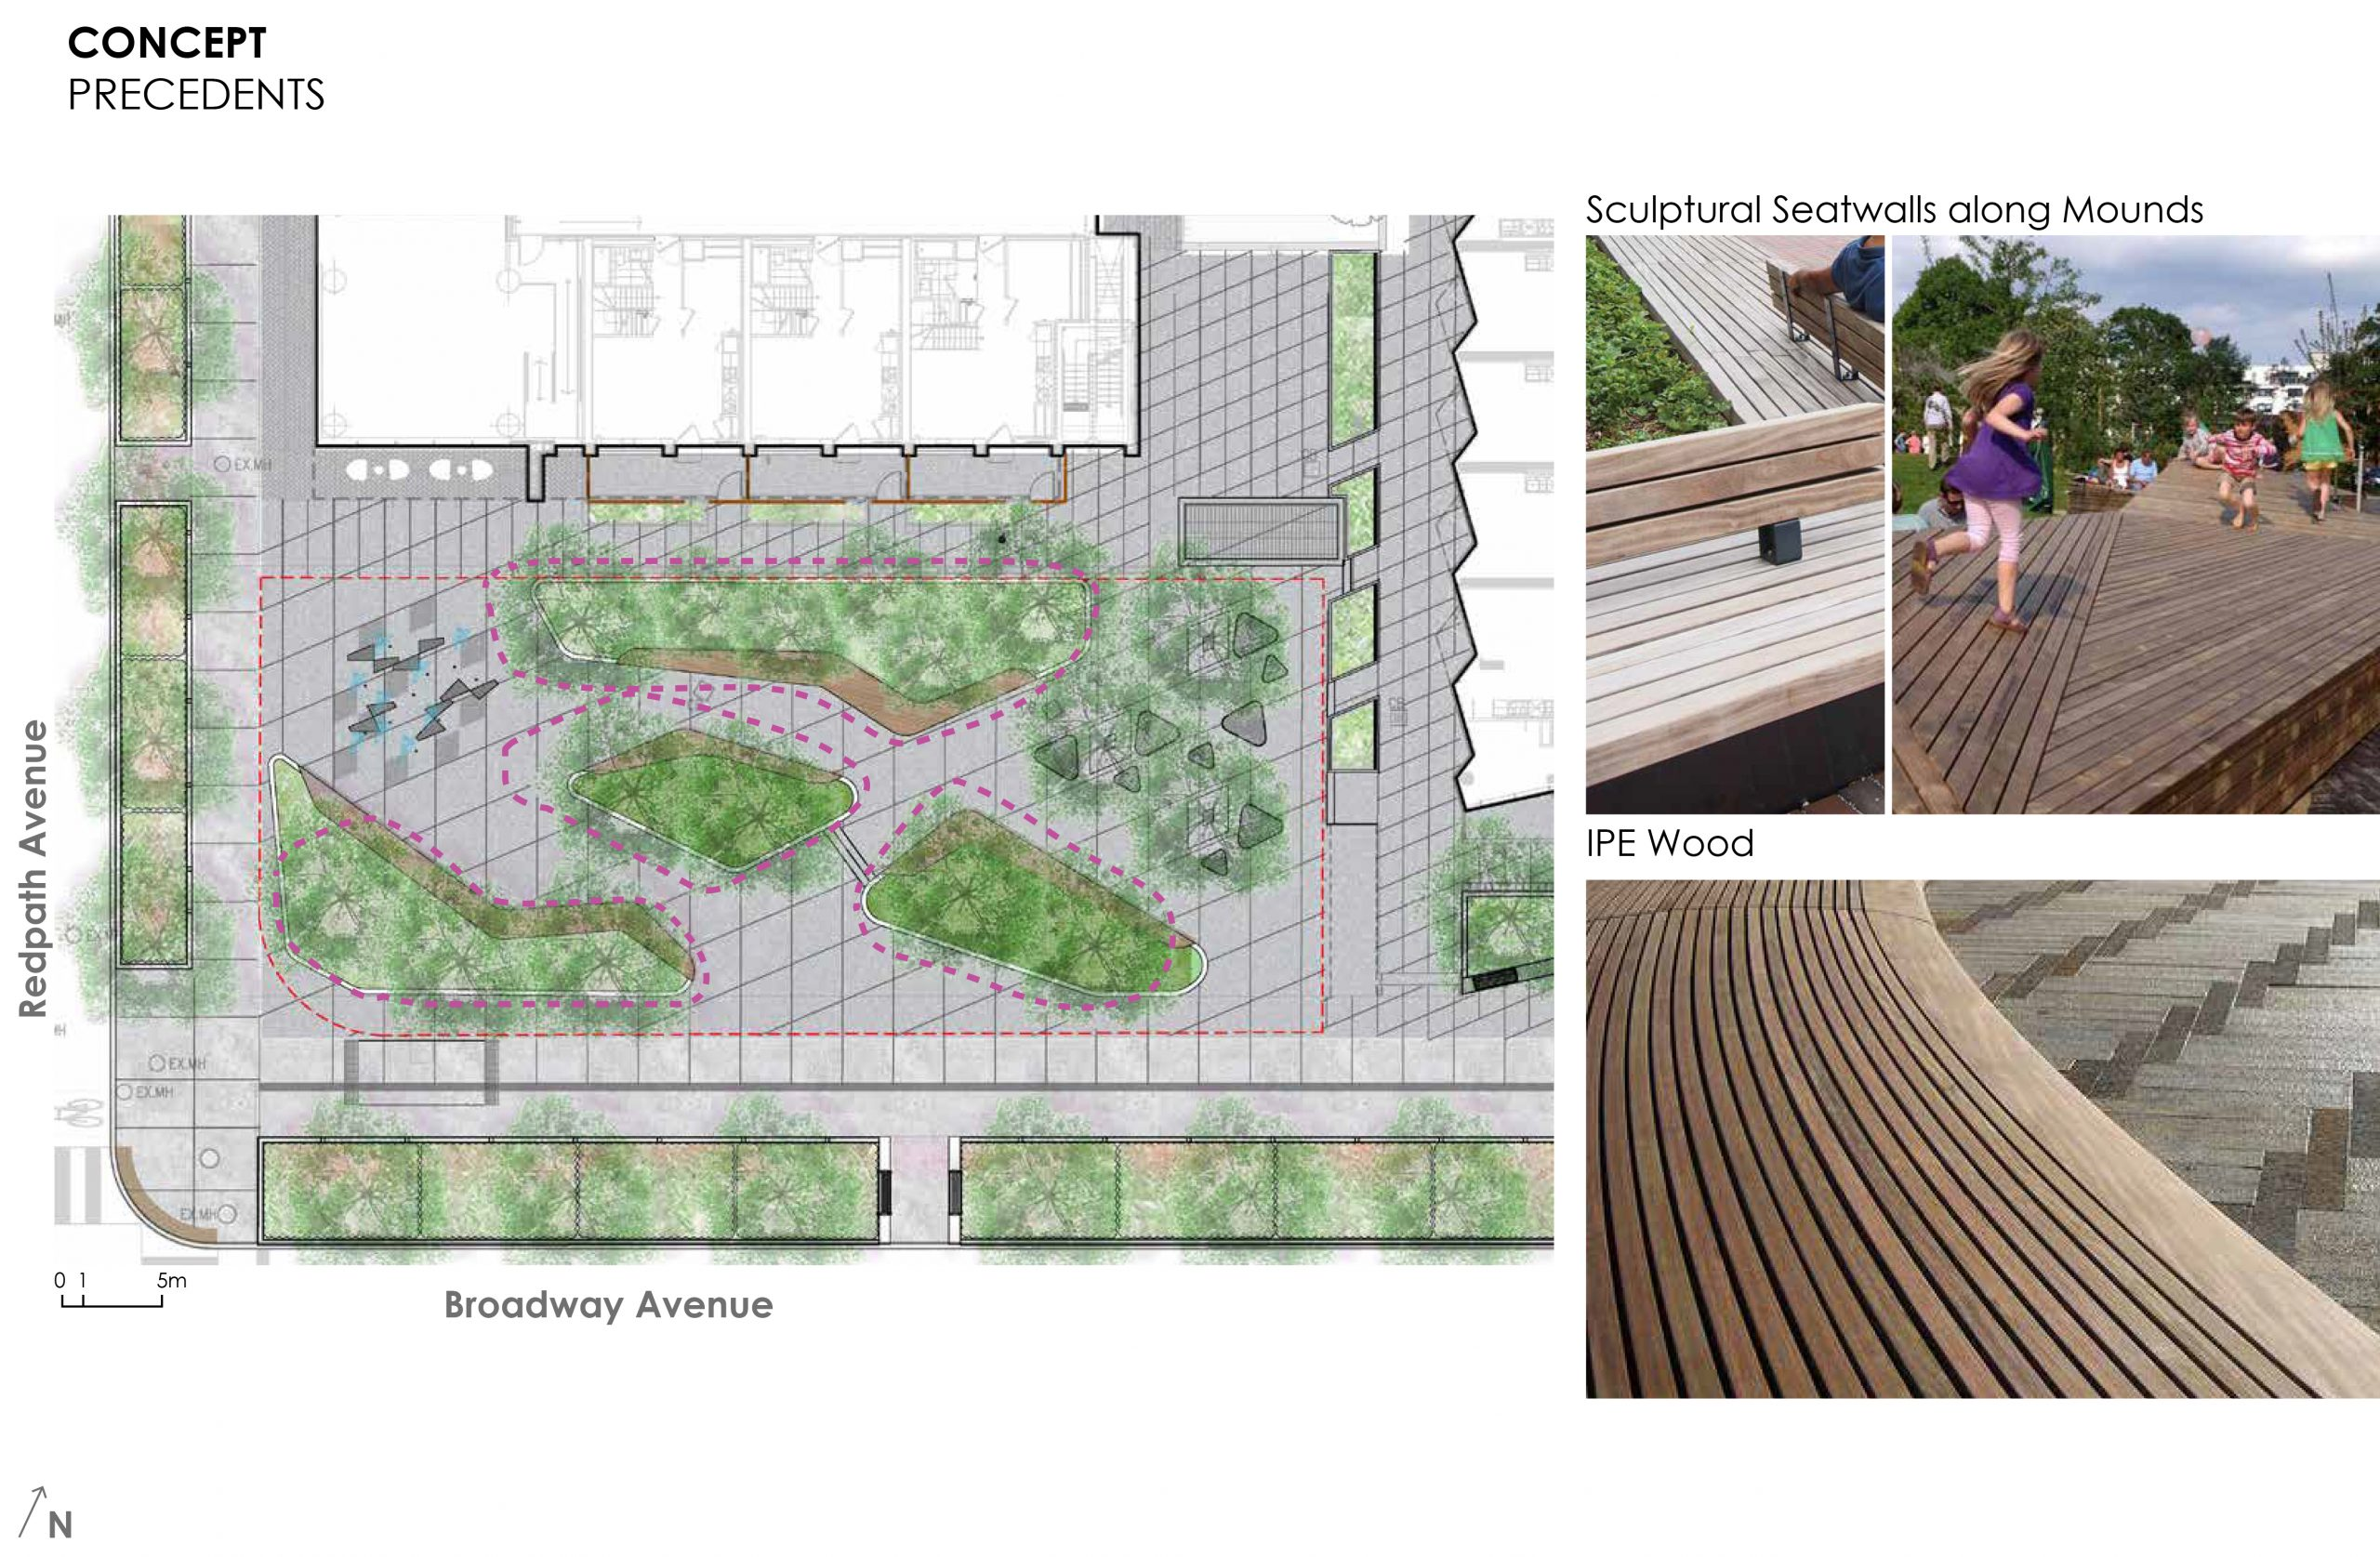 An image that provides some examples of the sculptural wood benches and seatwalls proposed for the new park. These benches and seatwalls are intended to be integrated into the design throughout the park.